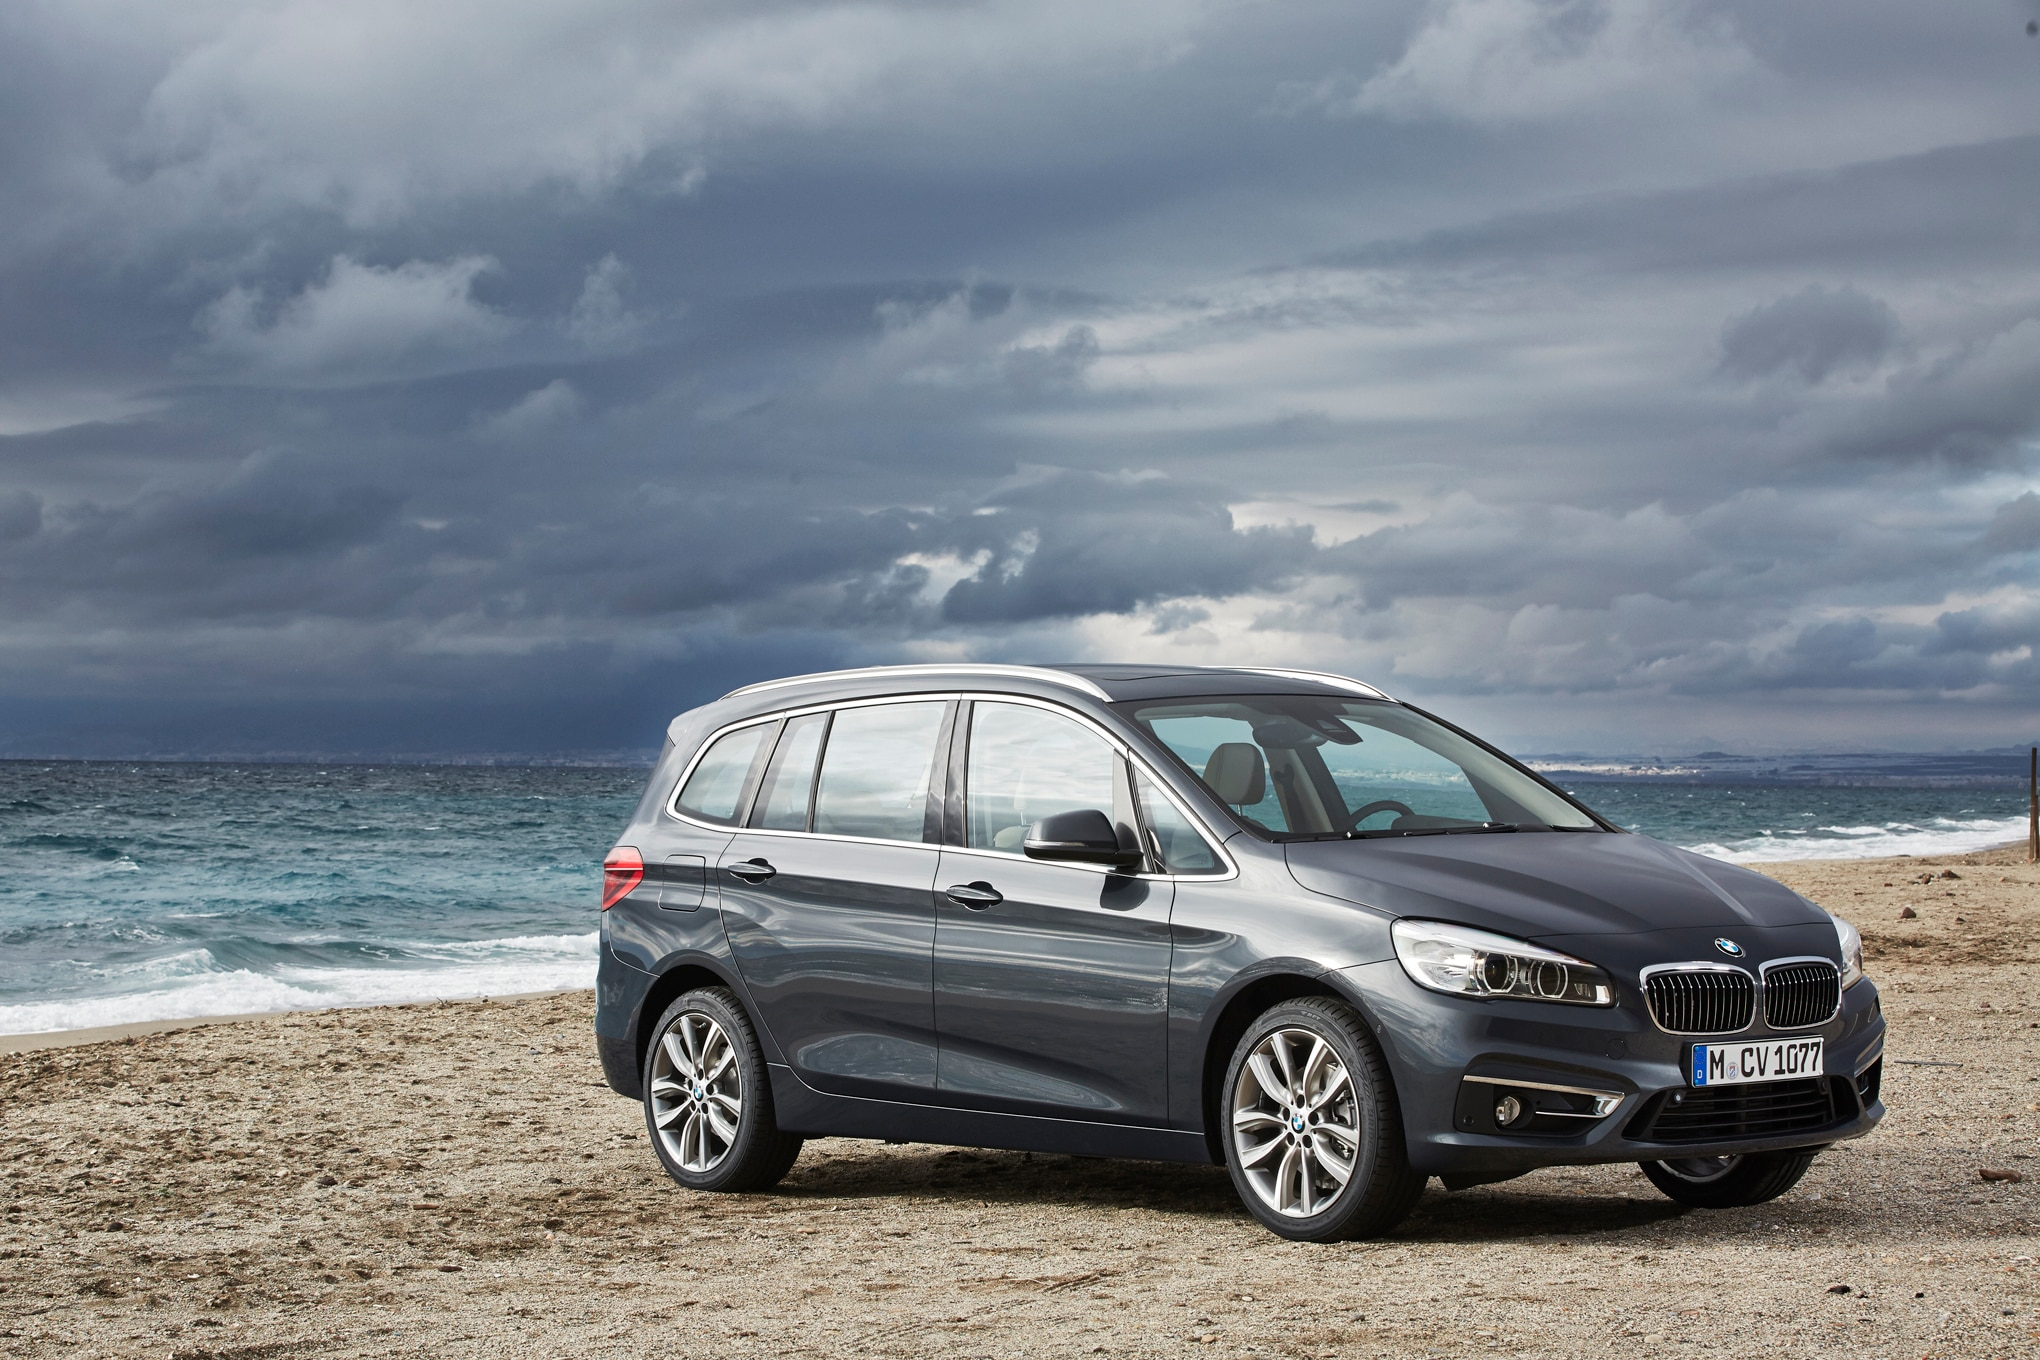 Bmw 220i gran tourer m sport package 2015 wallpapers and hd images - European